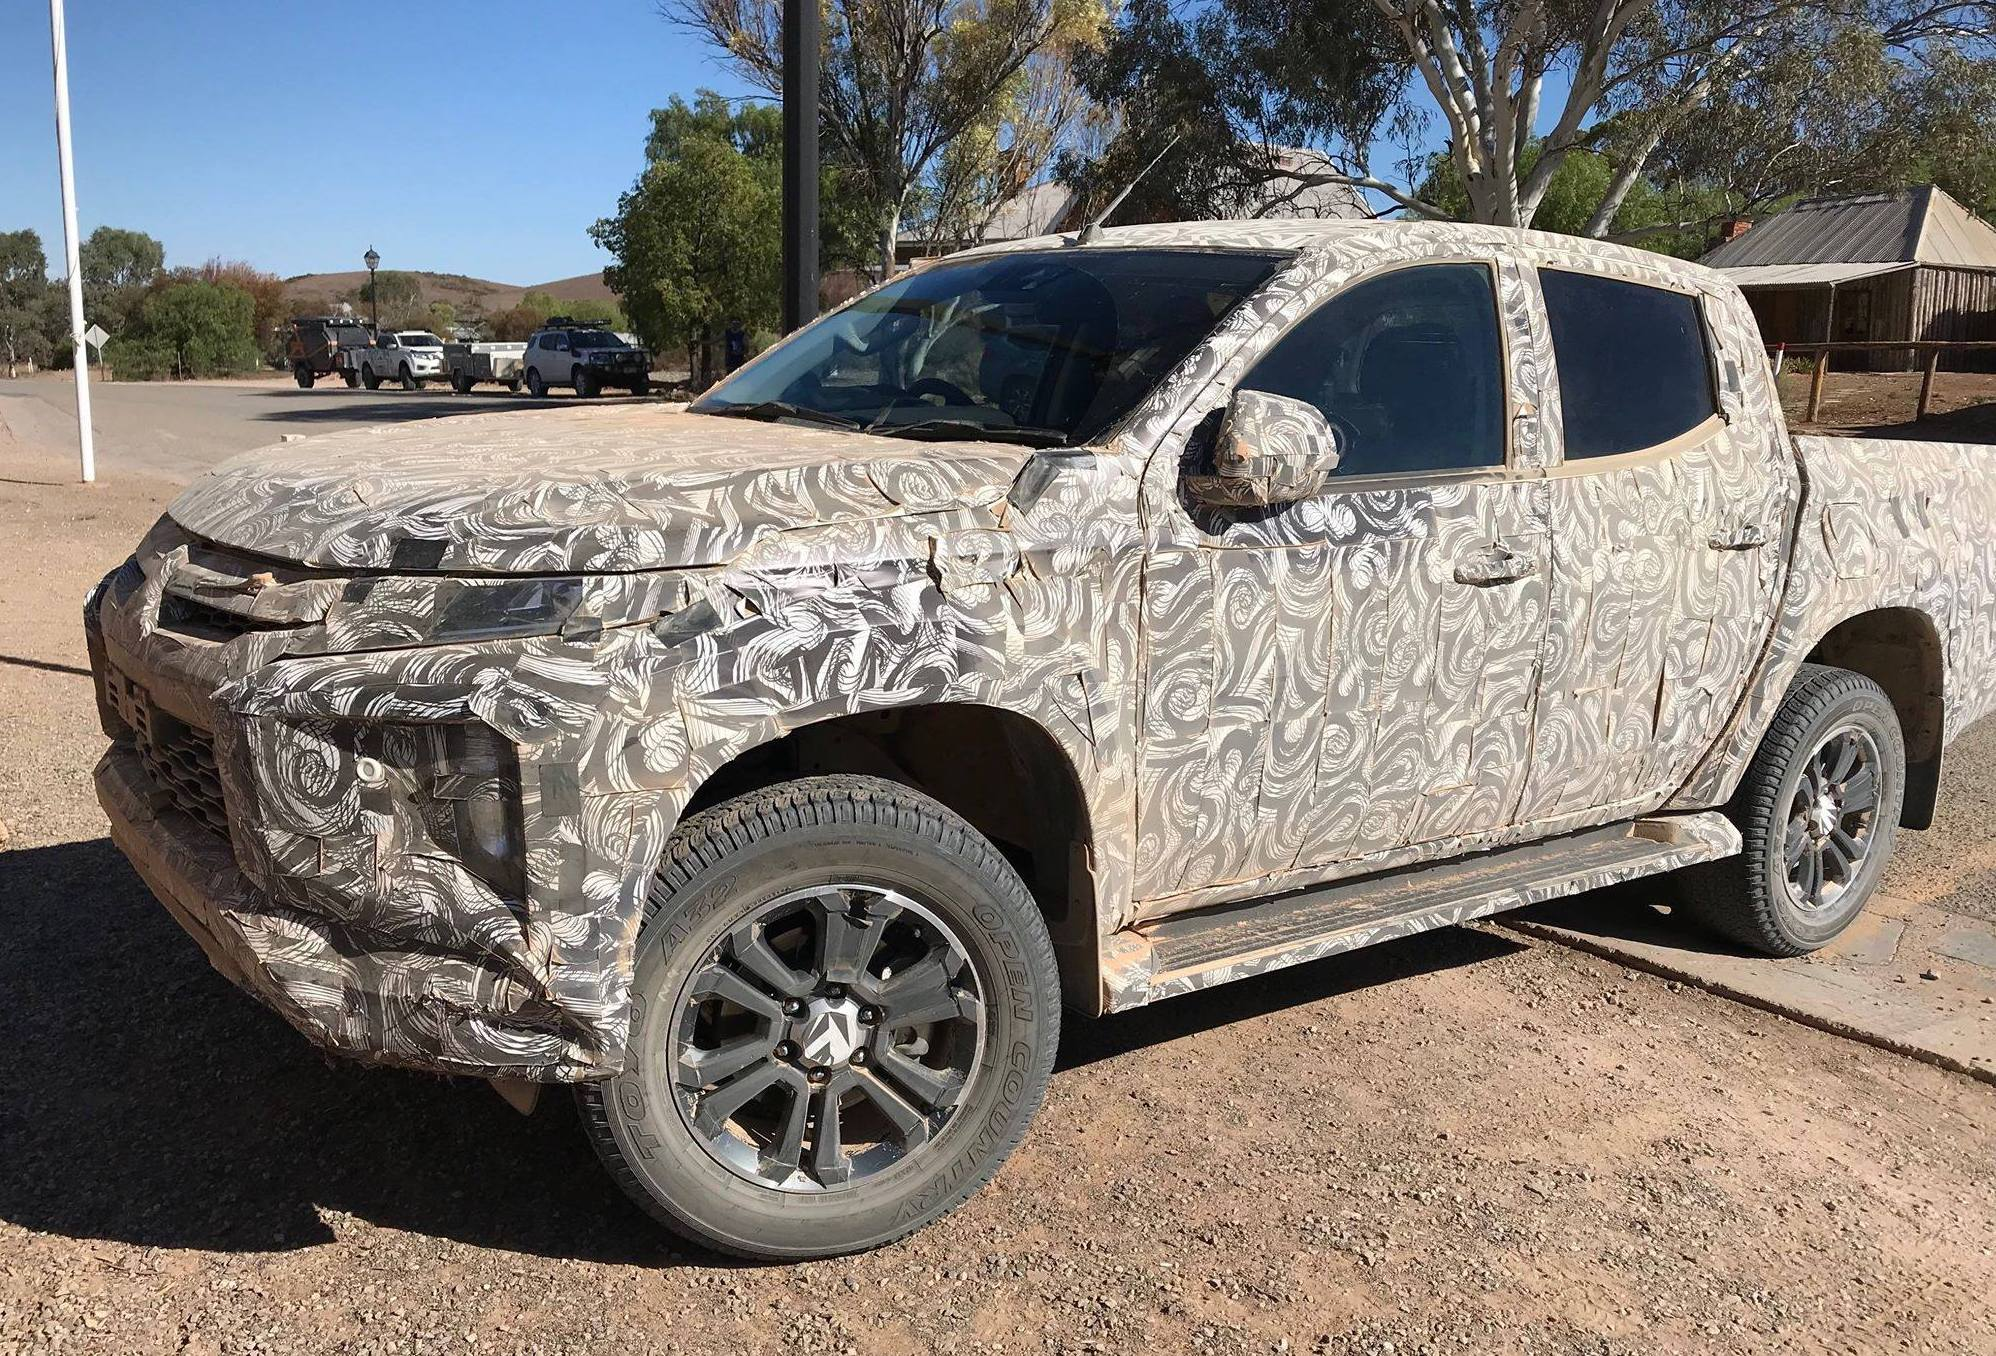 2019 Mitsubishi Triton prototype spotted in South ...